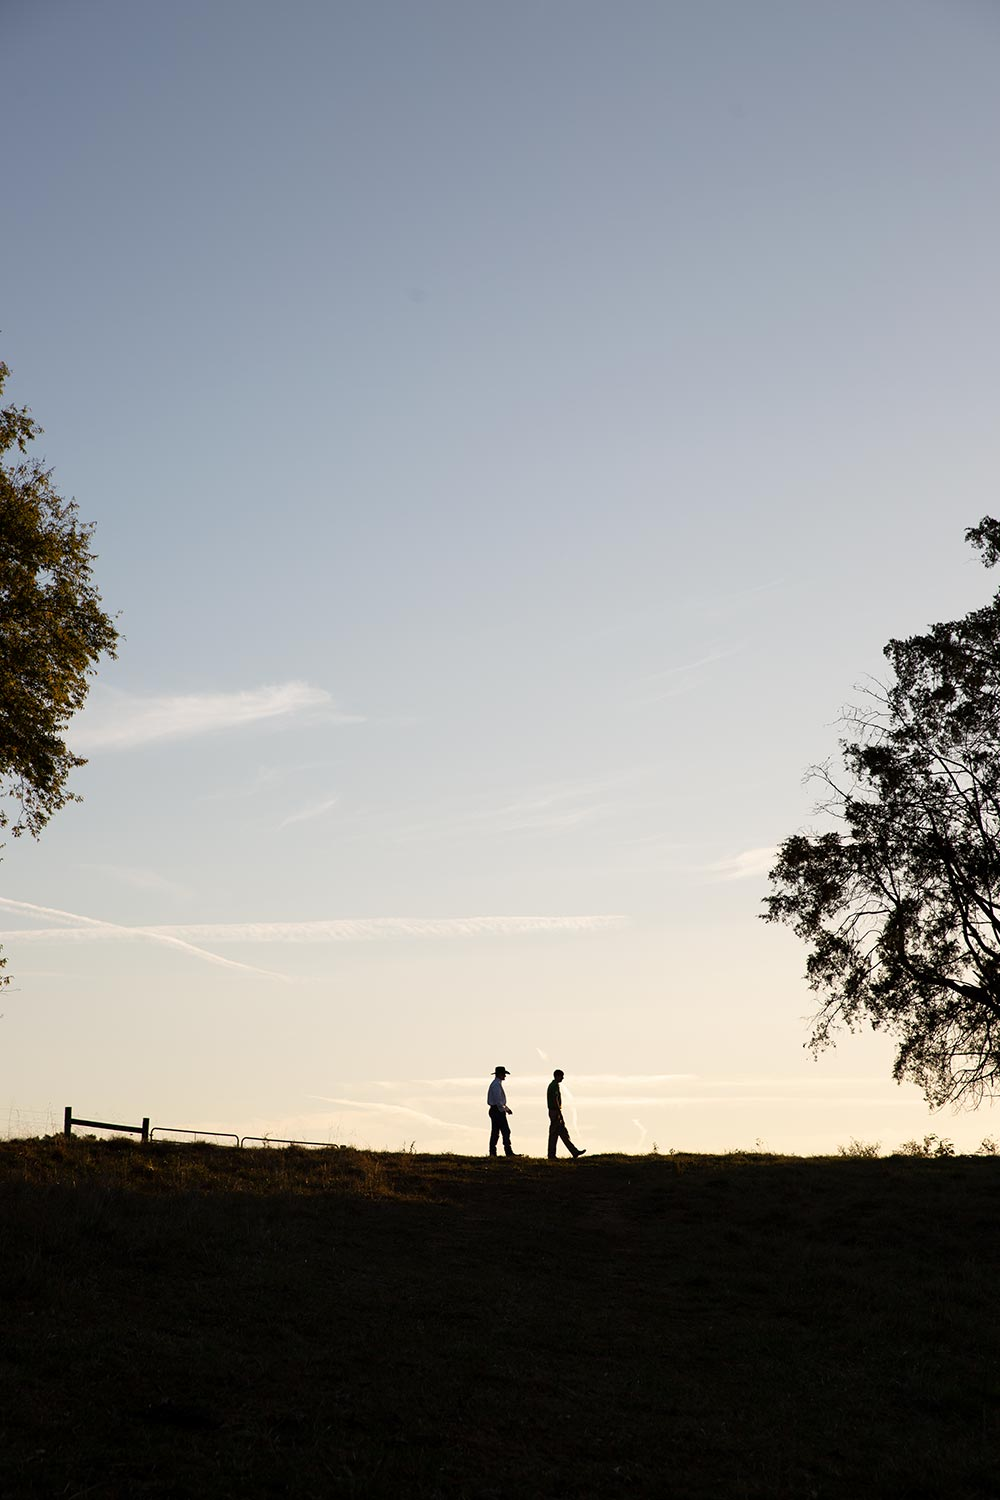 Silhouette of two people walking in the distance at sunset